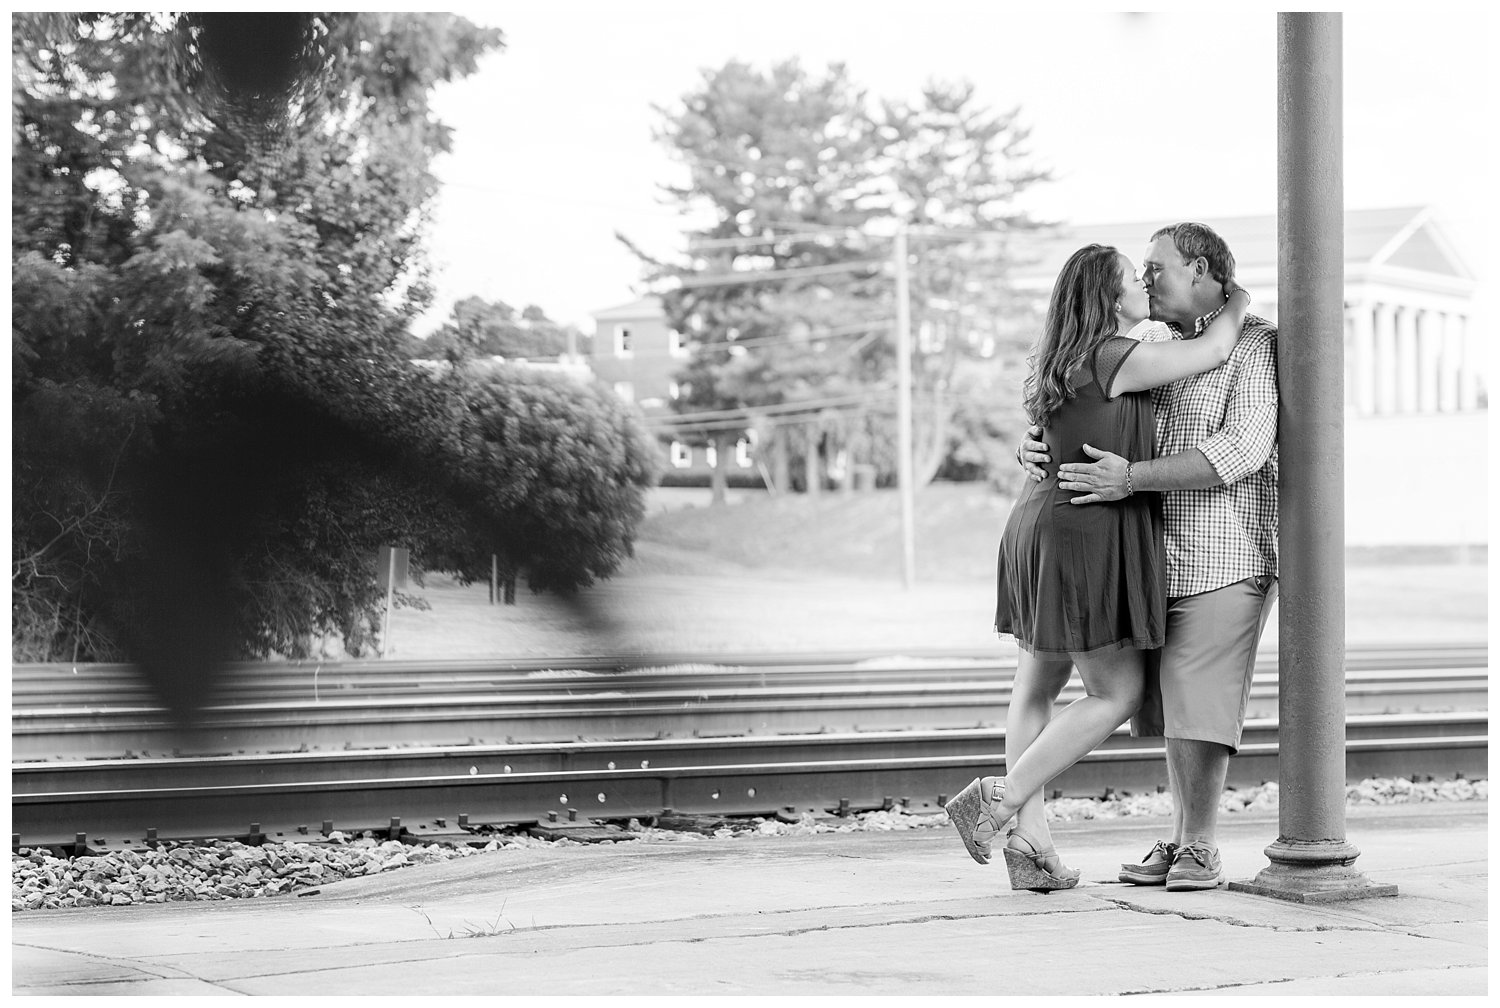 elovephotos old town alexandria engagement session_0783.jpg